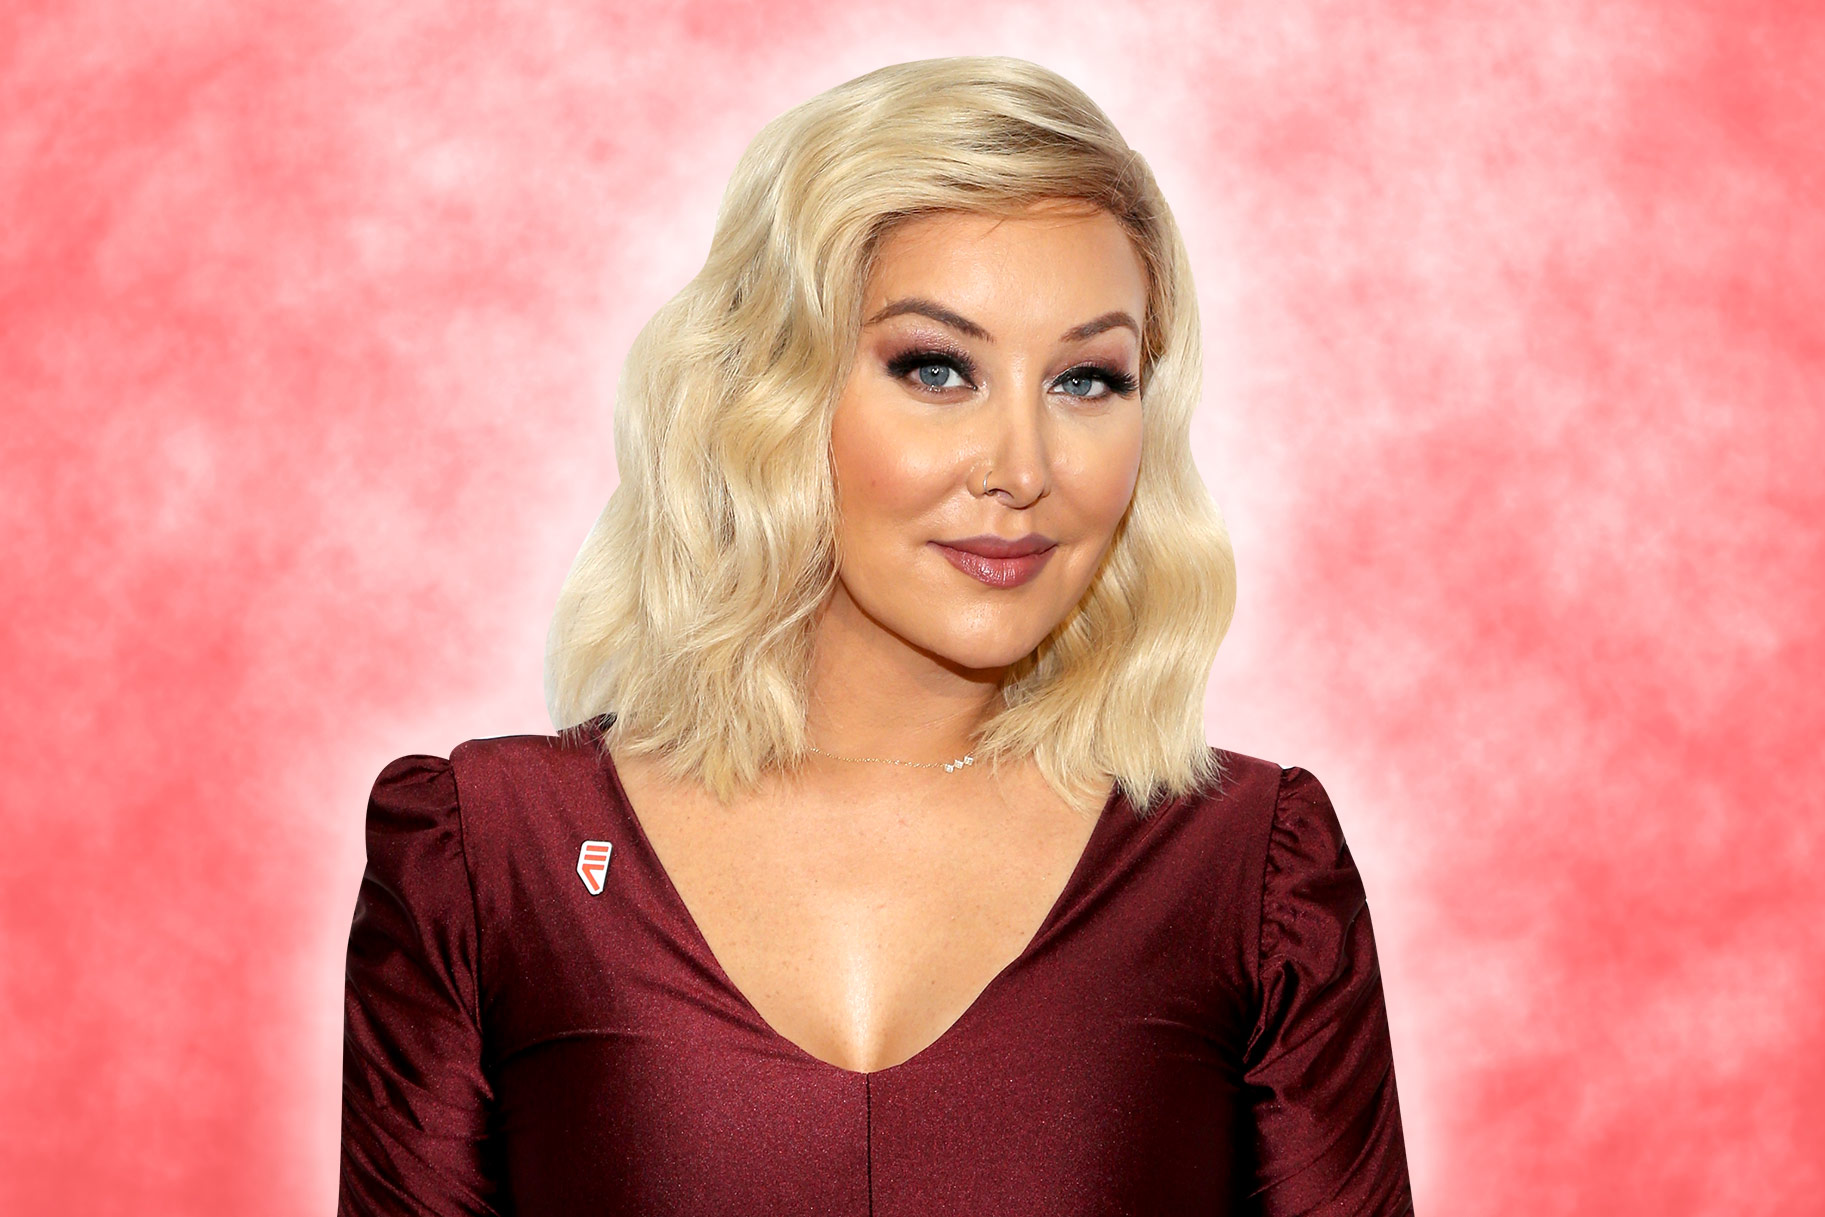 Billie Lee